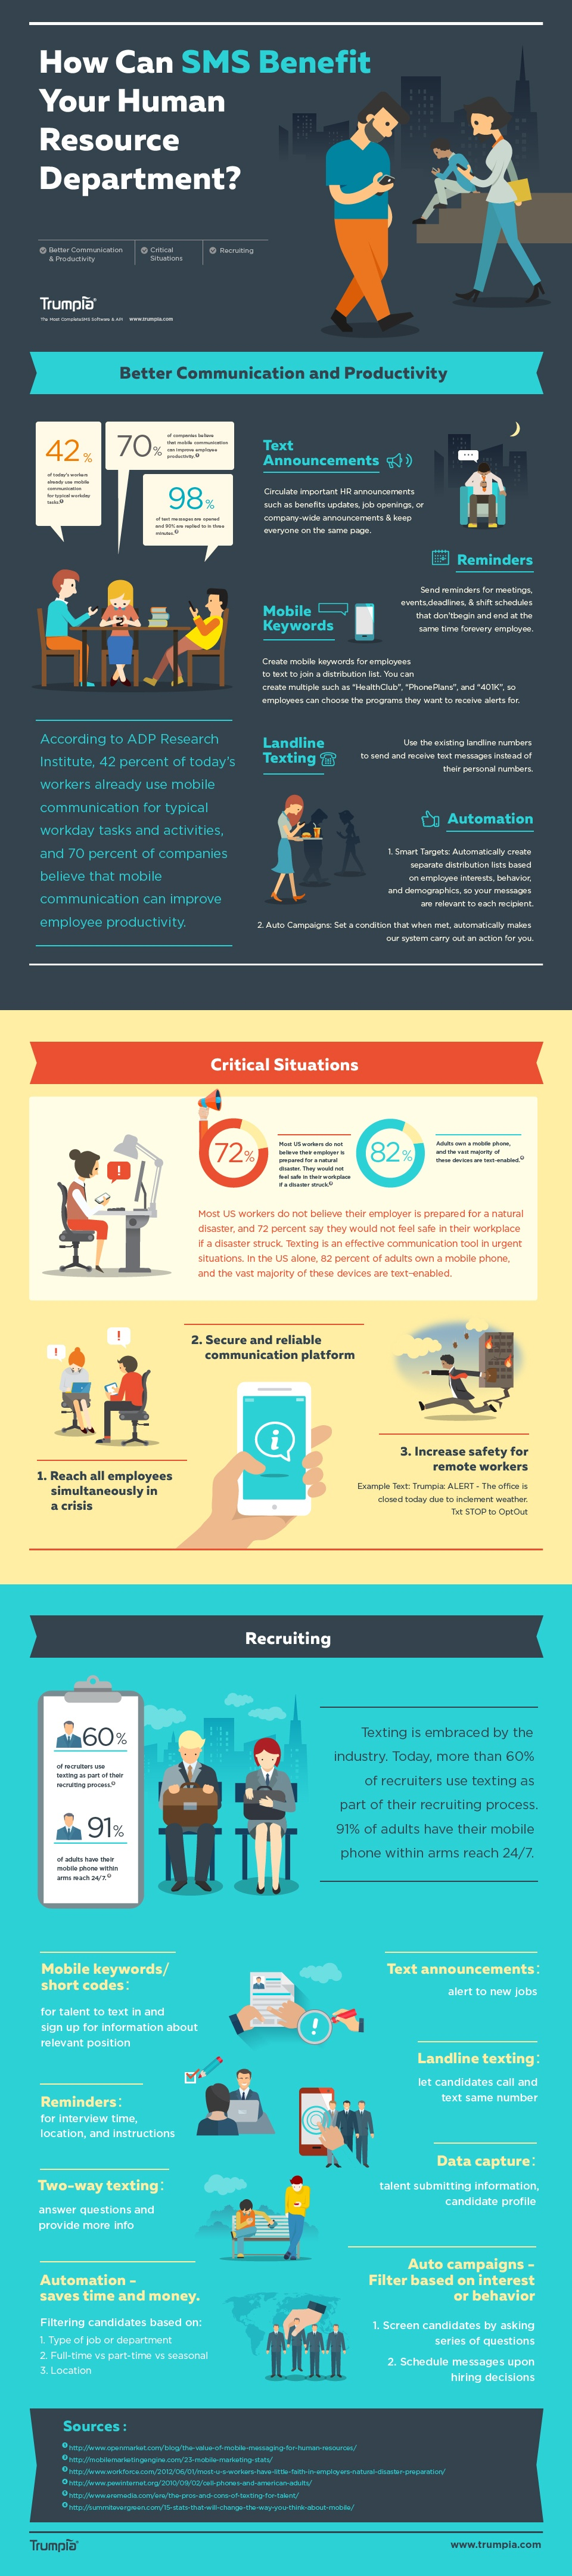 Infographic: How Can SMS Benefit HR? (Source: Trumpia)